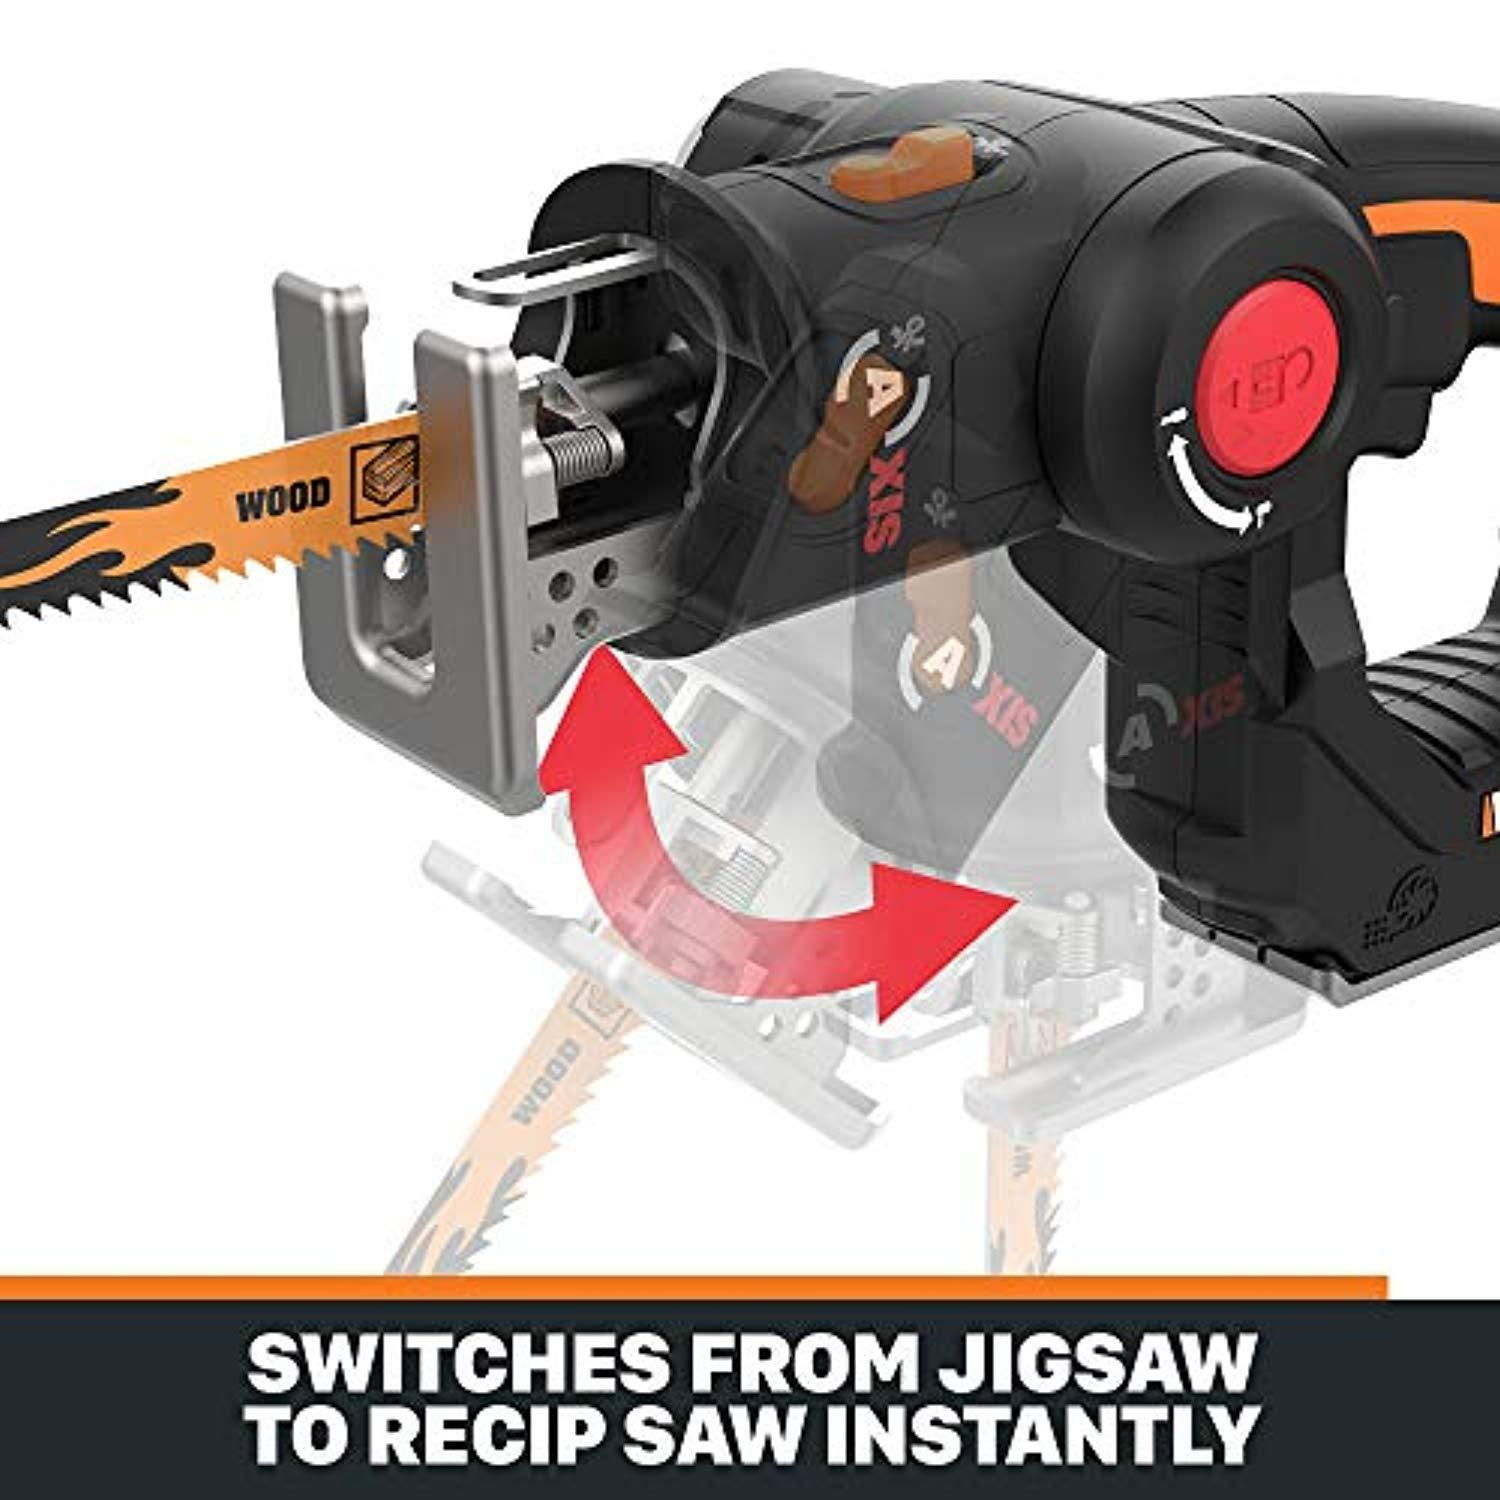 Muti-function 2-in-1 Reciprocating Saw and Jigsaw